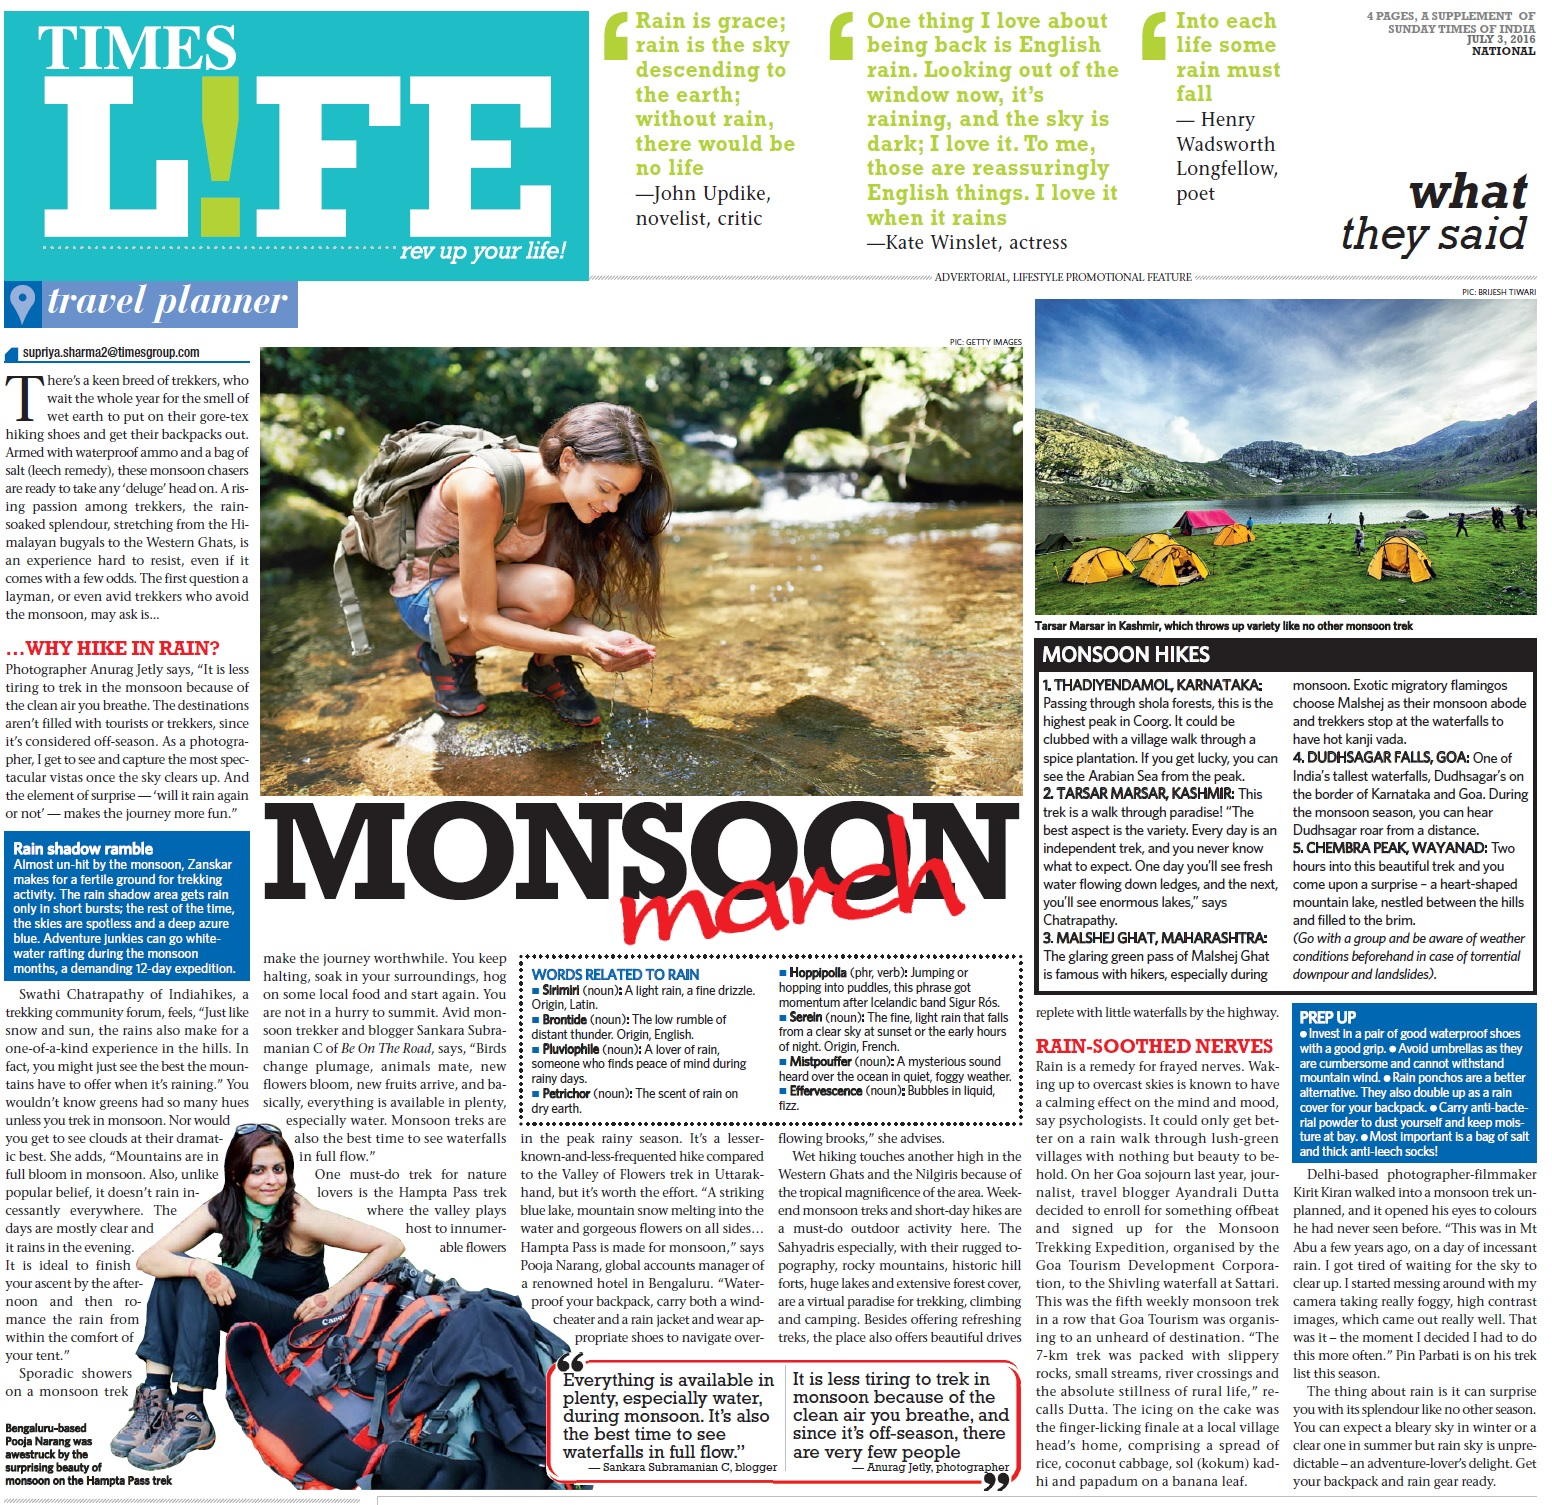 Times Life - Monsoon March - Jul 03, 2016